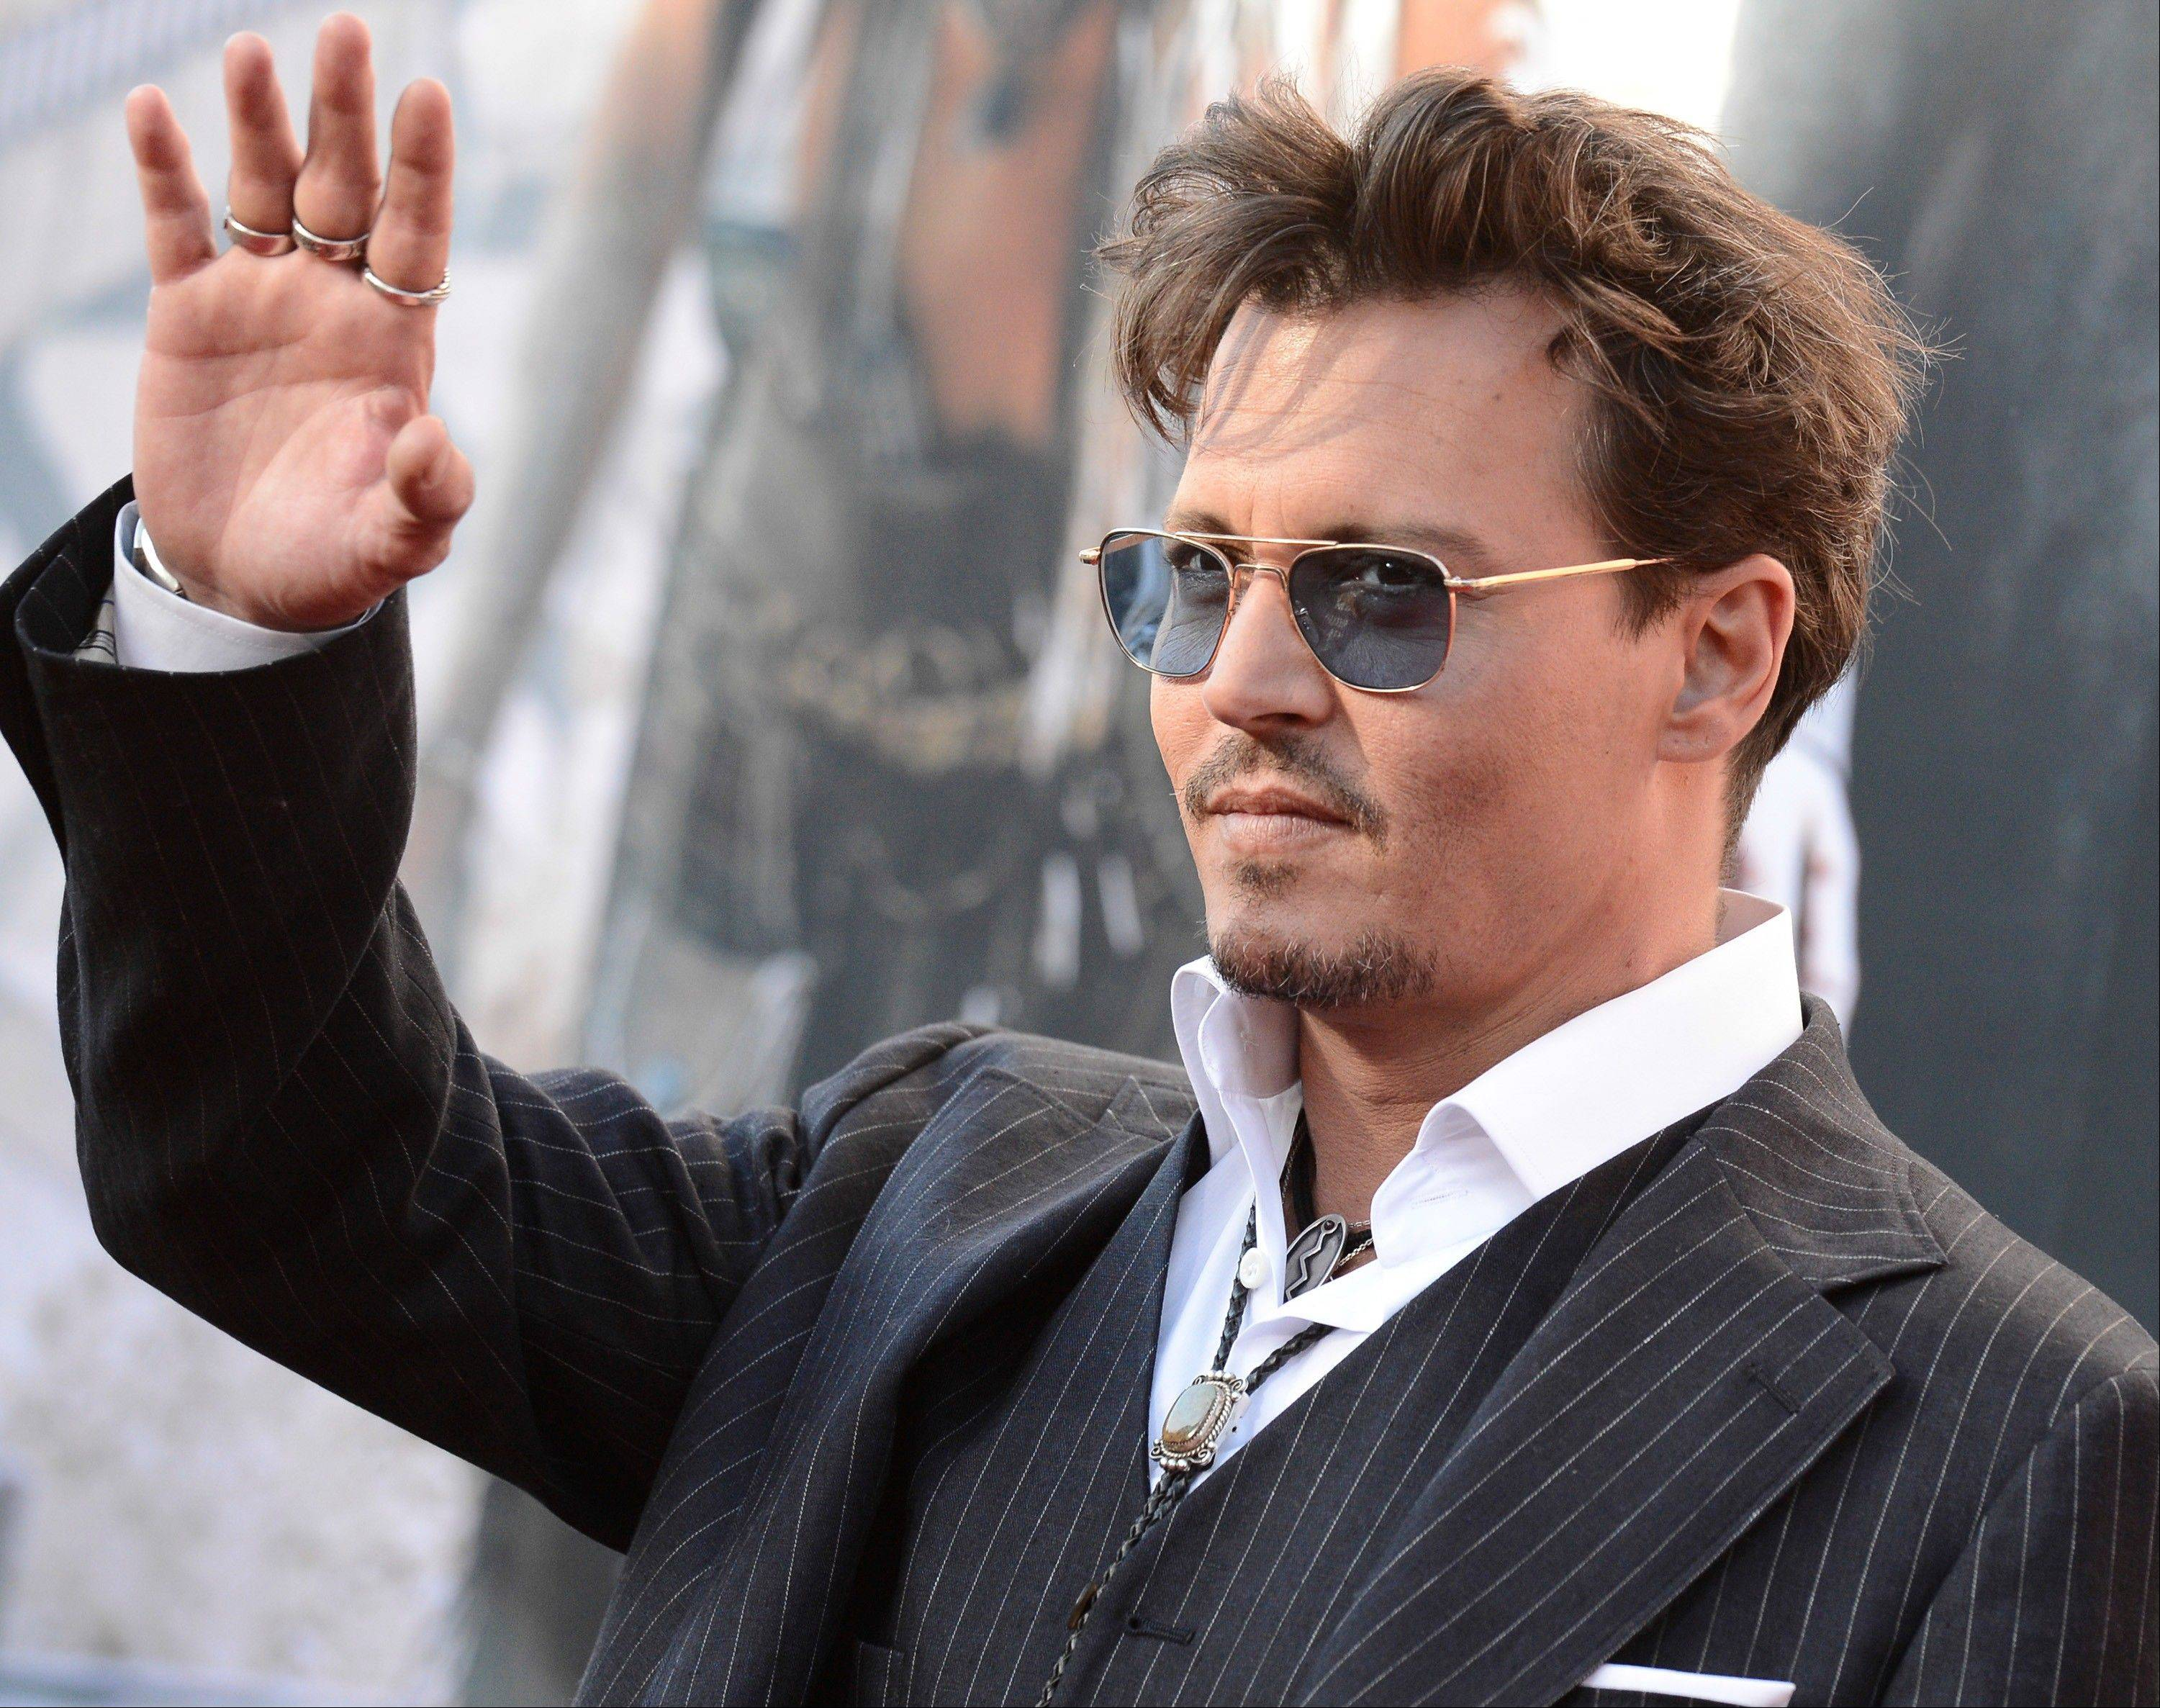 Johnny Depp, who recently turned 50, said he recognizes that popularity is fleeting.